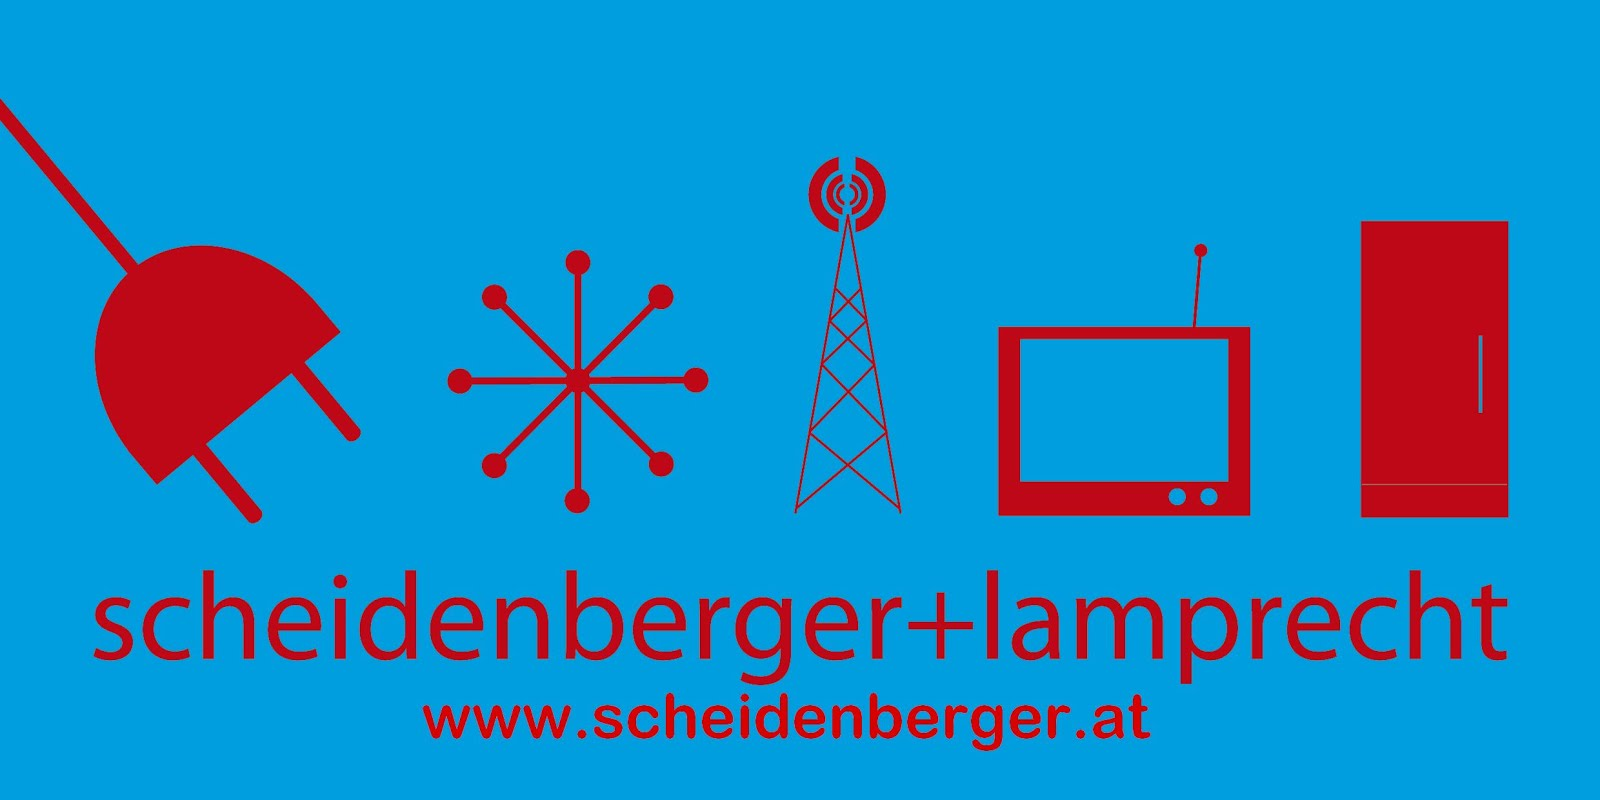 www.scheidenberger.at